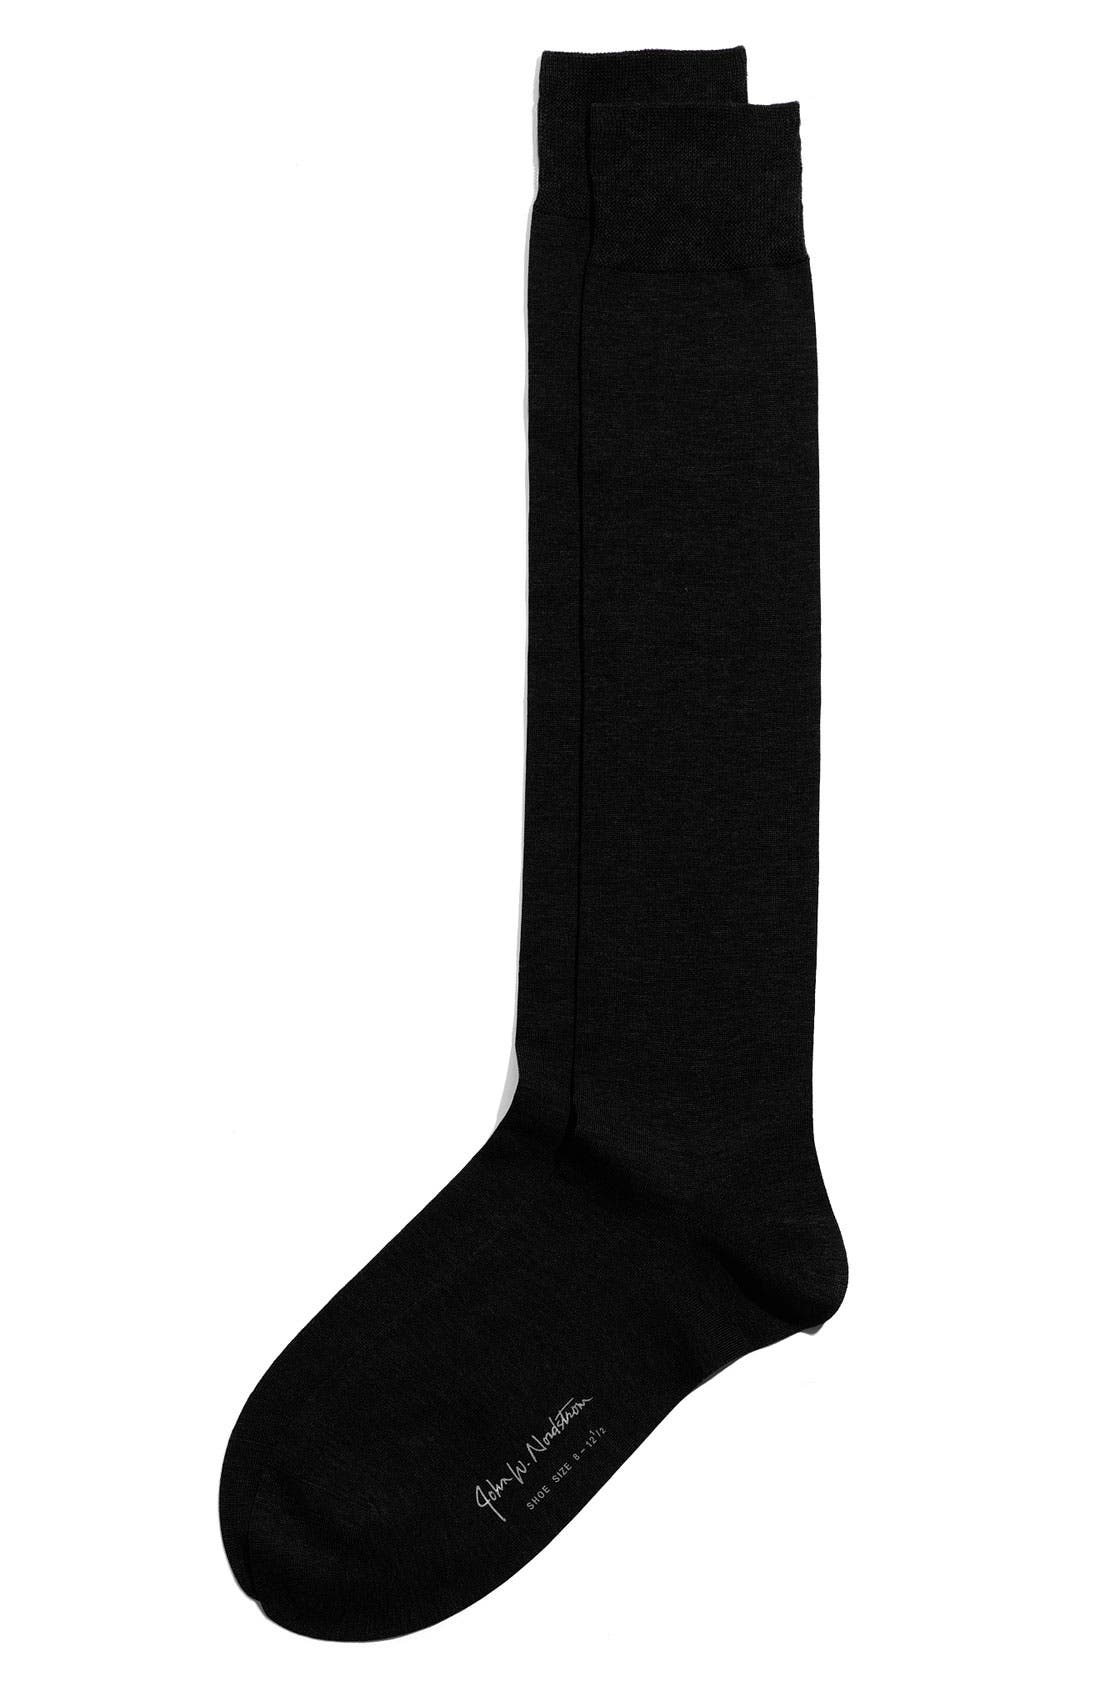 Over the Calf Egyptian Cotton Blend Socks,                         Main,                         color, 001